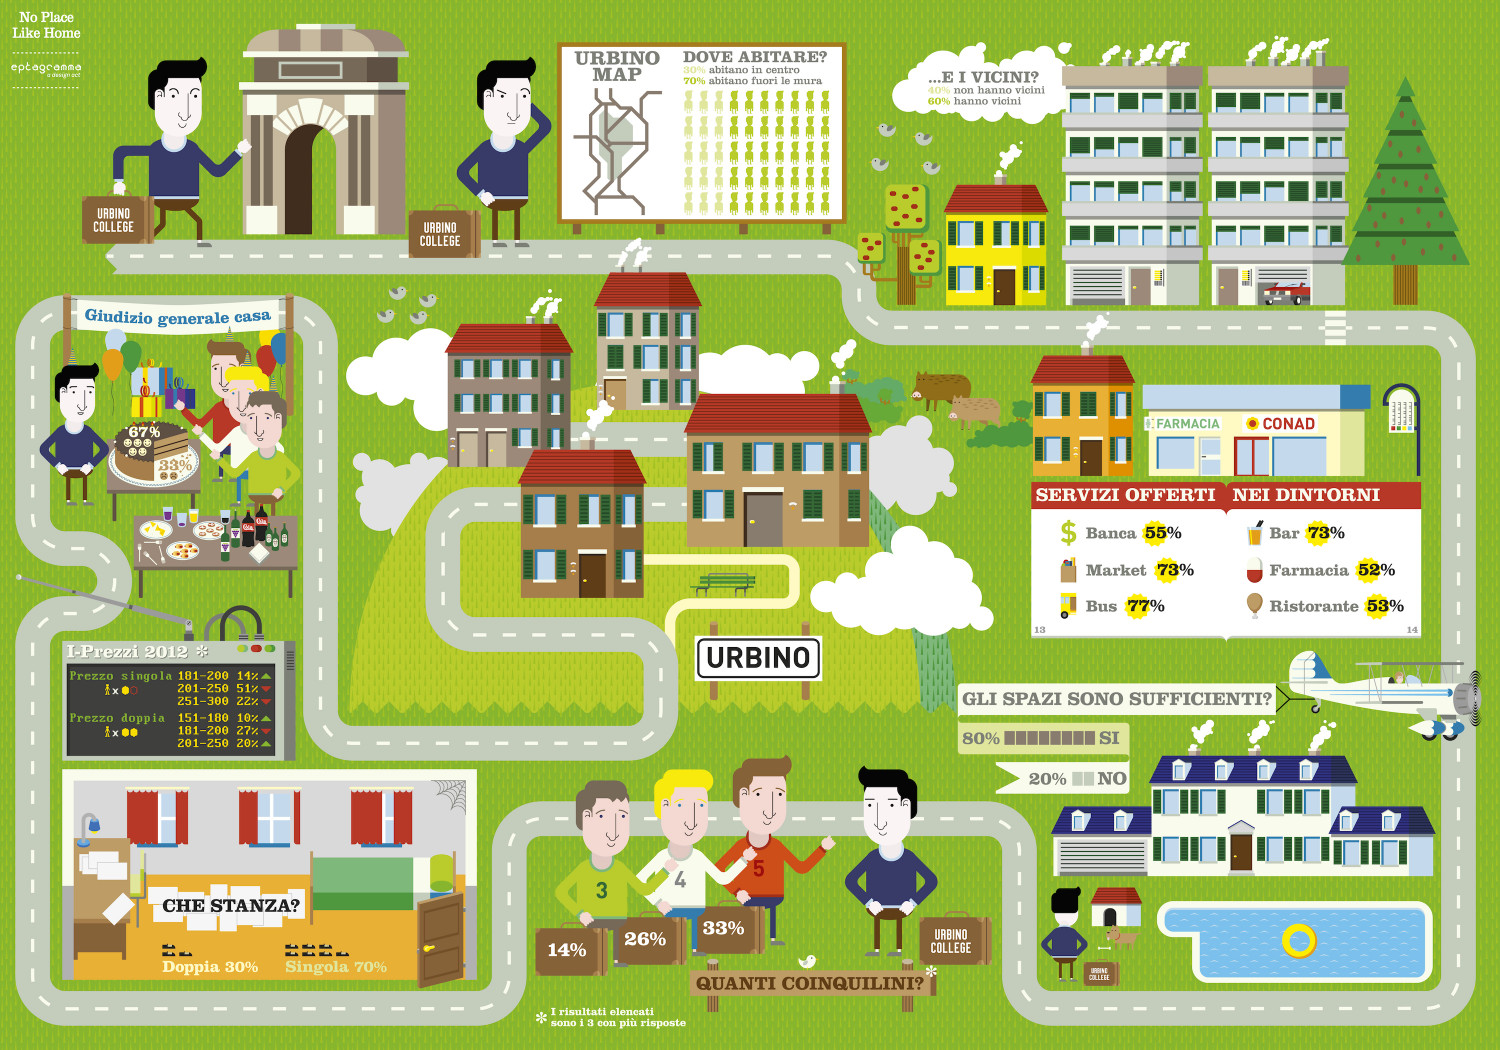 Student Housing in Urbino Infographic